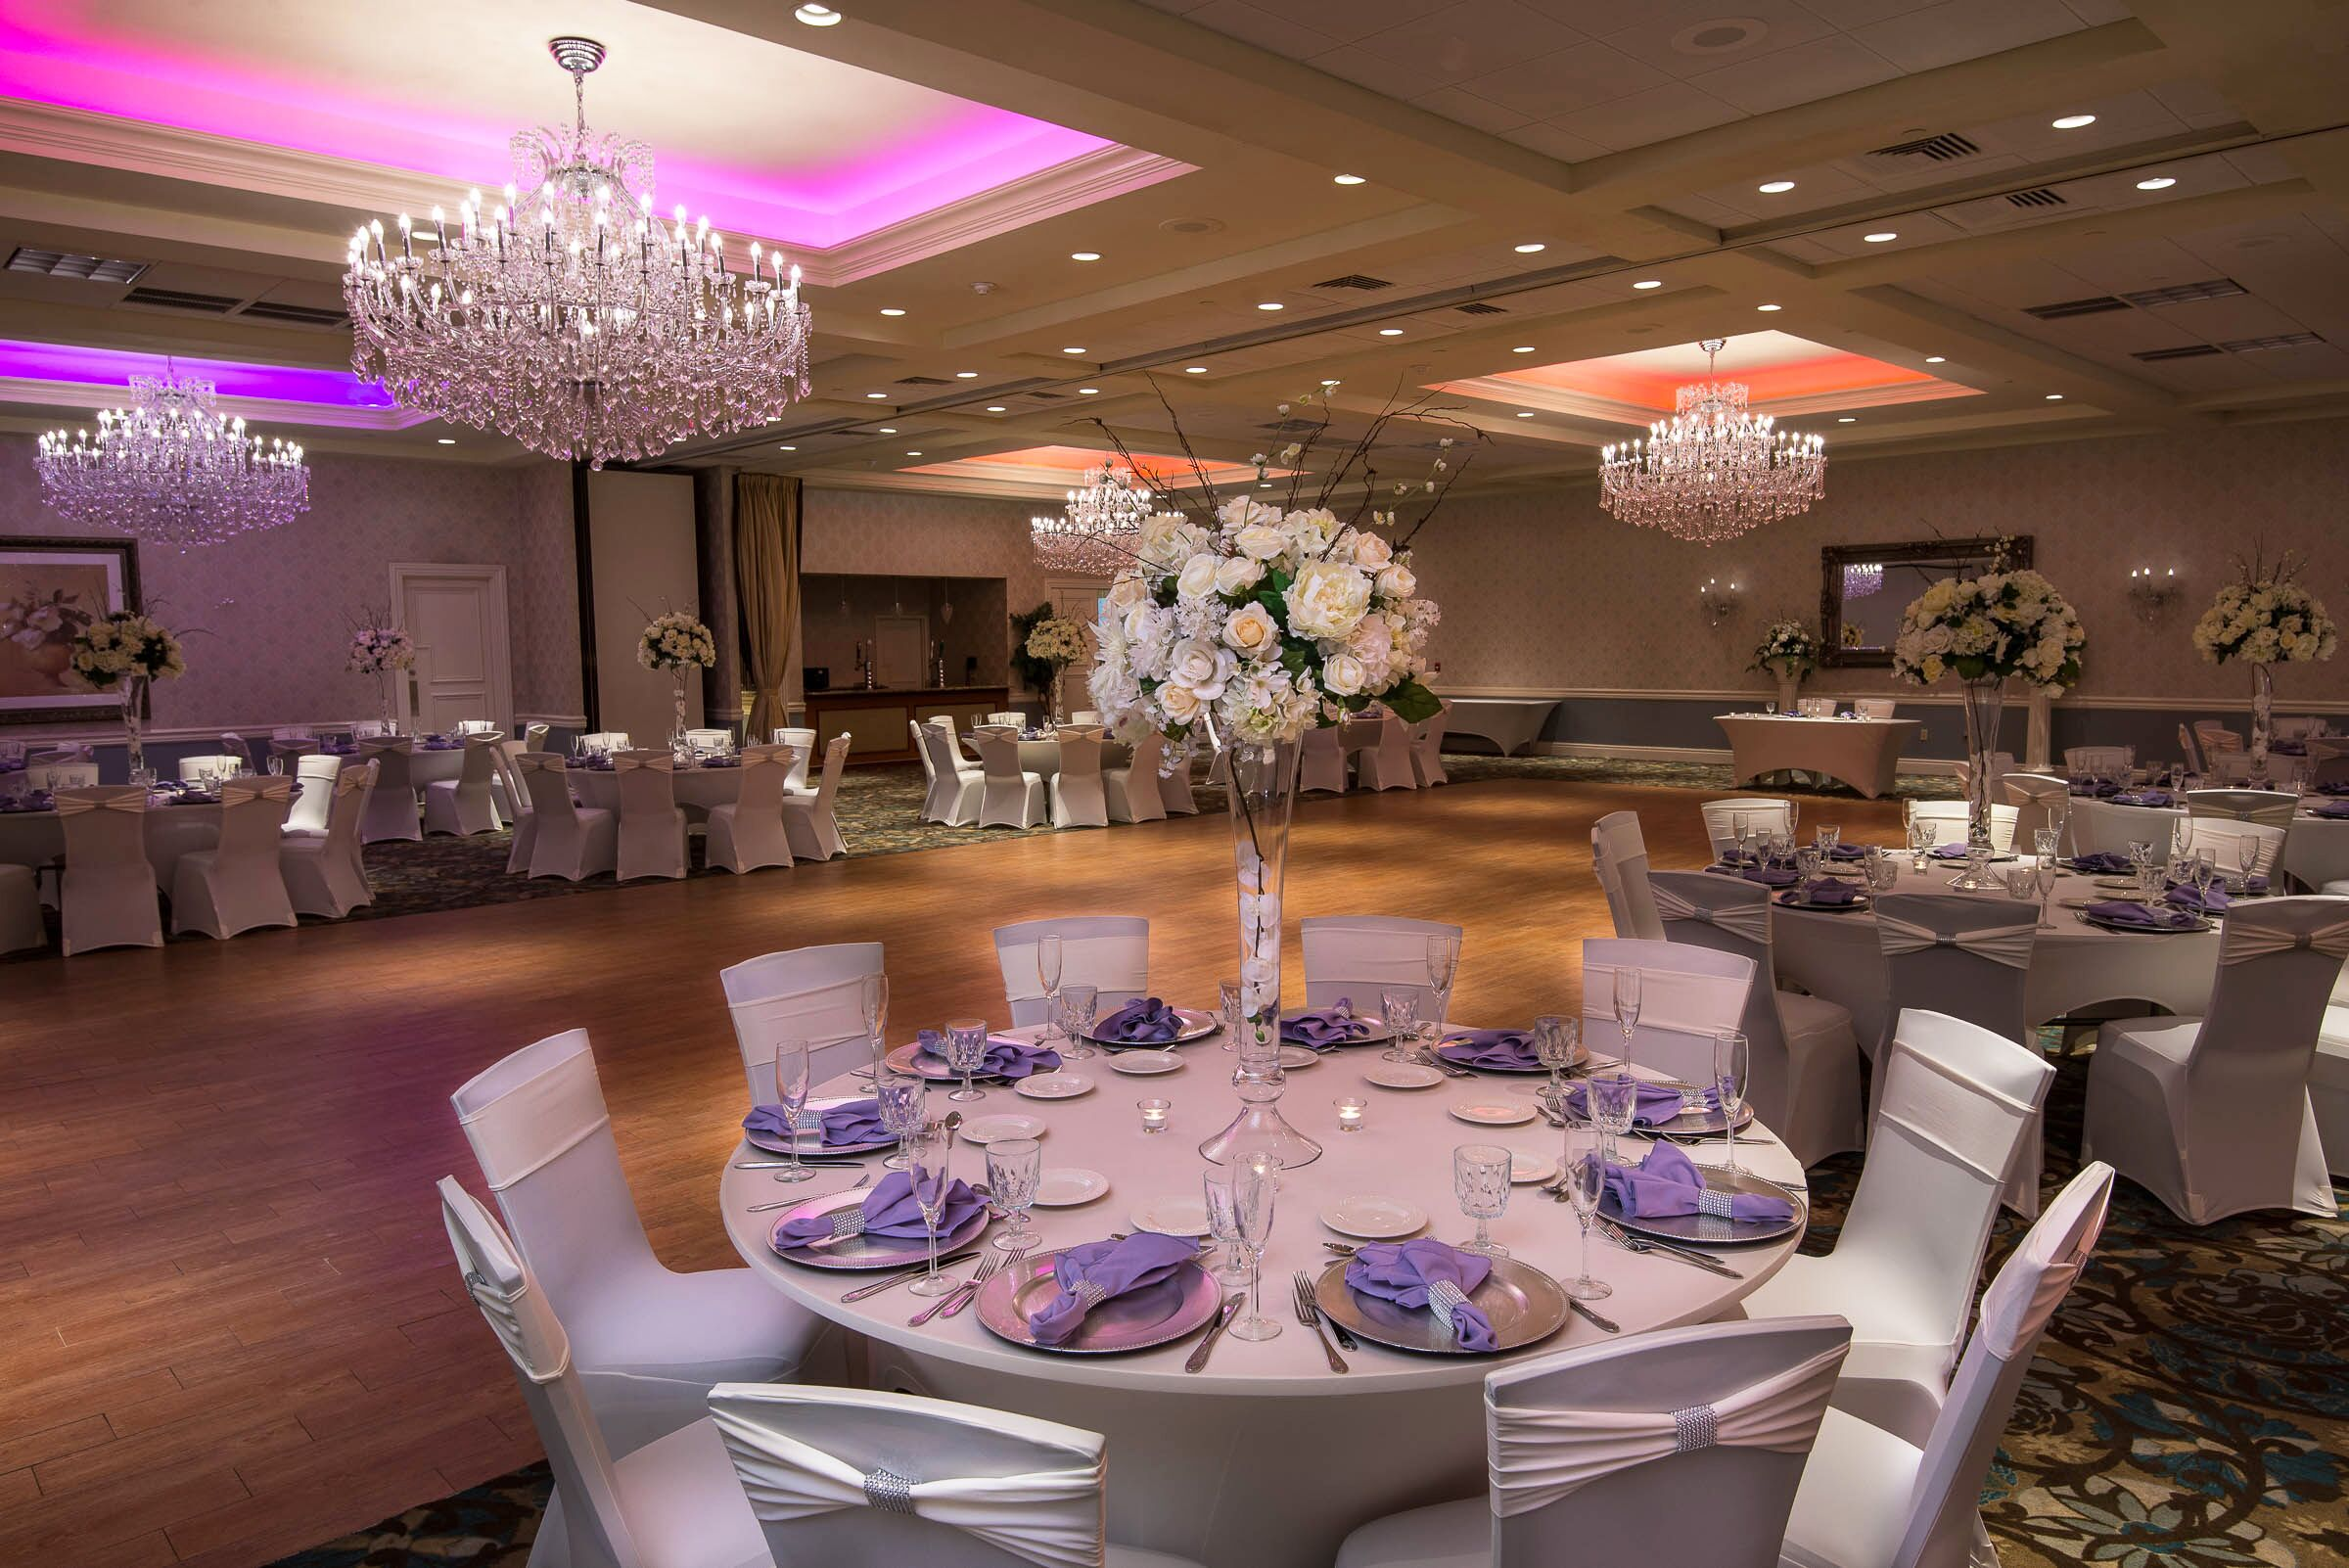 Wedding reception venues in farmingdale nj the knot crystal ballroom at the radisson hotel of freehold arubaitofo Images